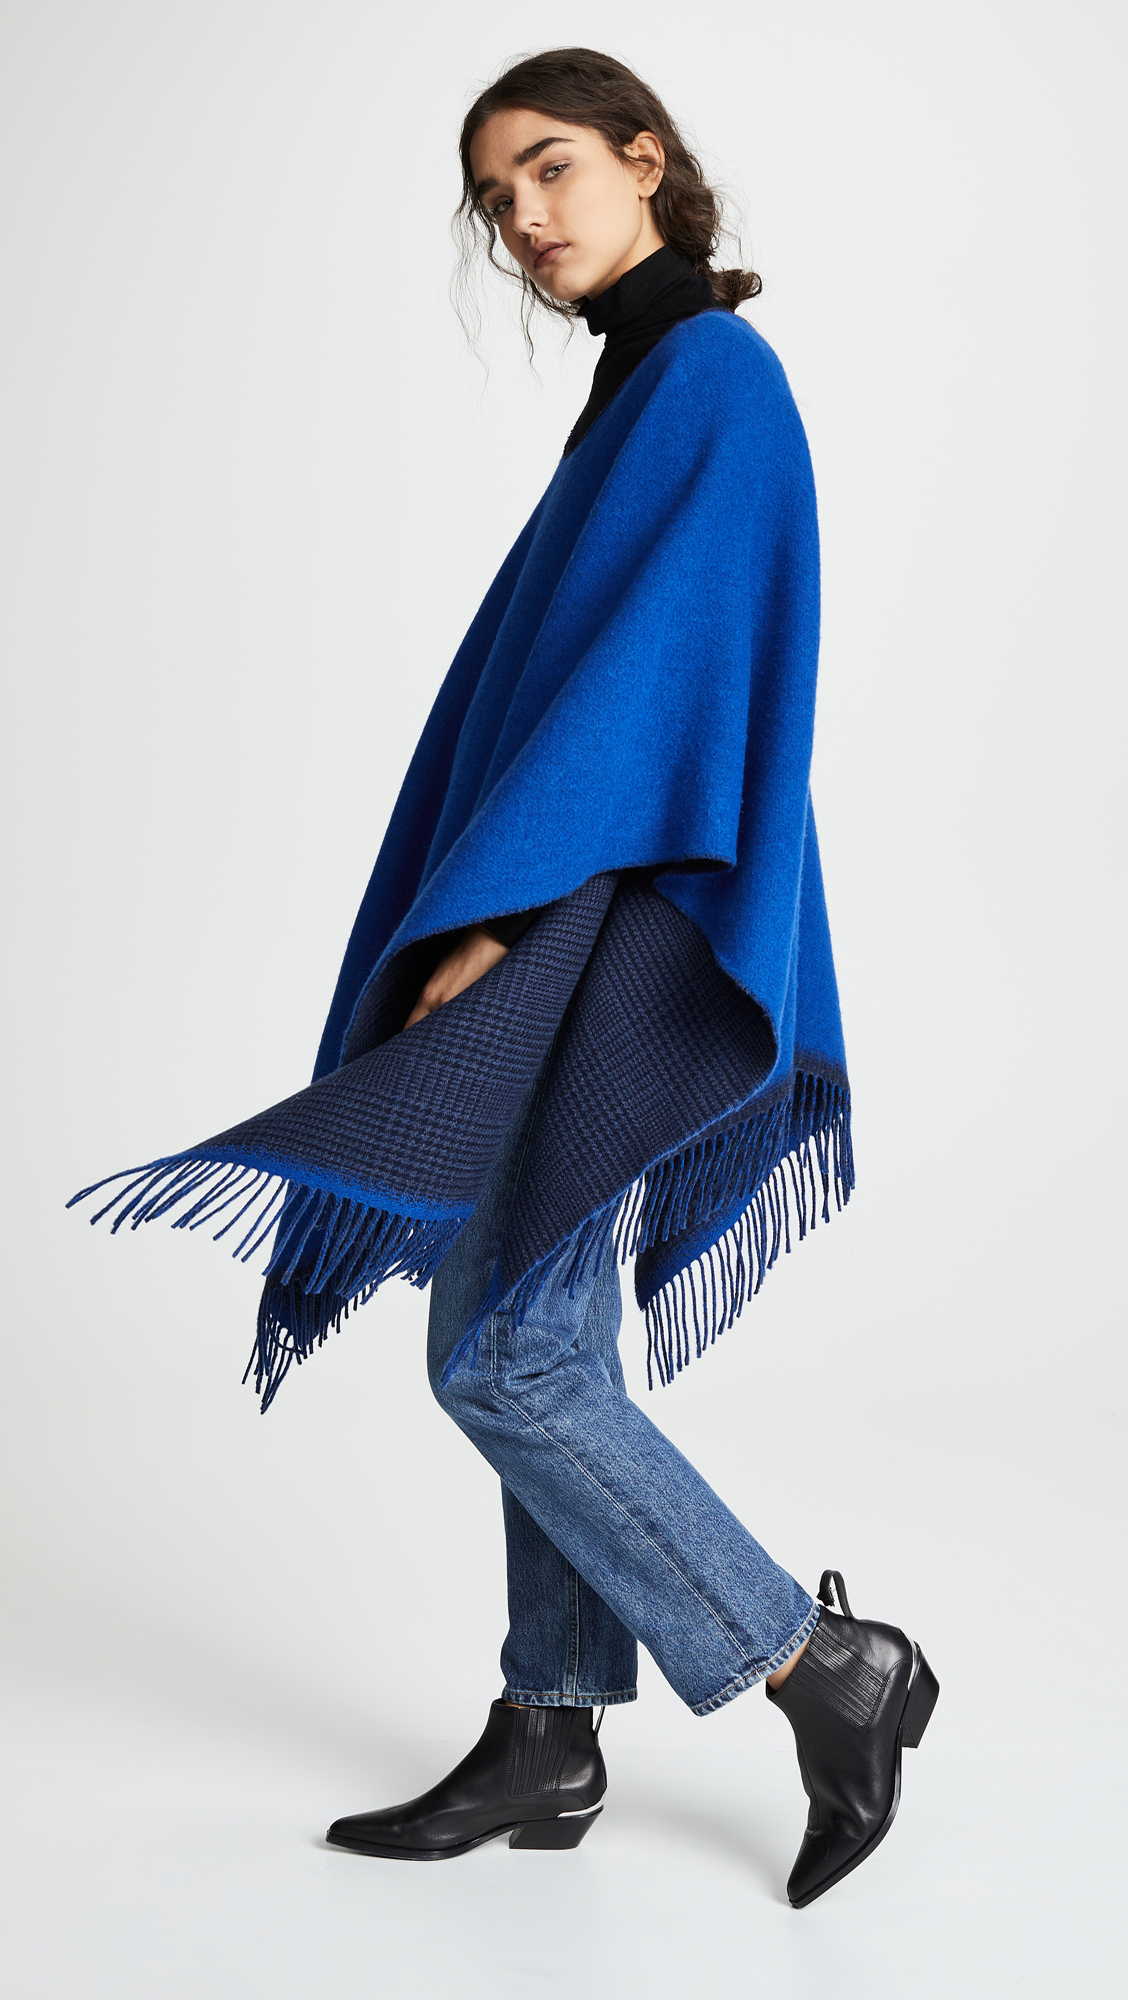 6ed552d54ec https://www.refinery29.com/en-us/winter-cape-poncho 2018-11-30T18 ...